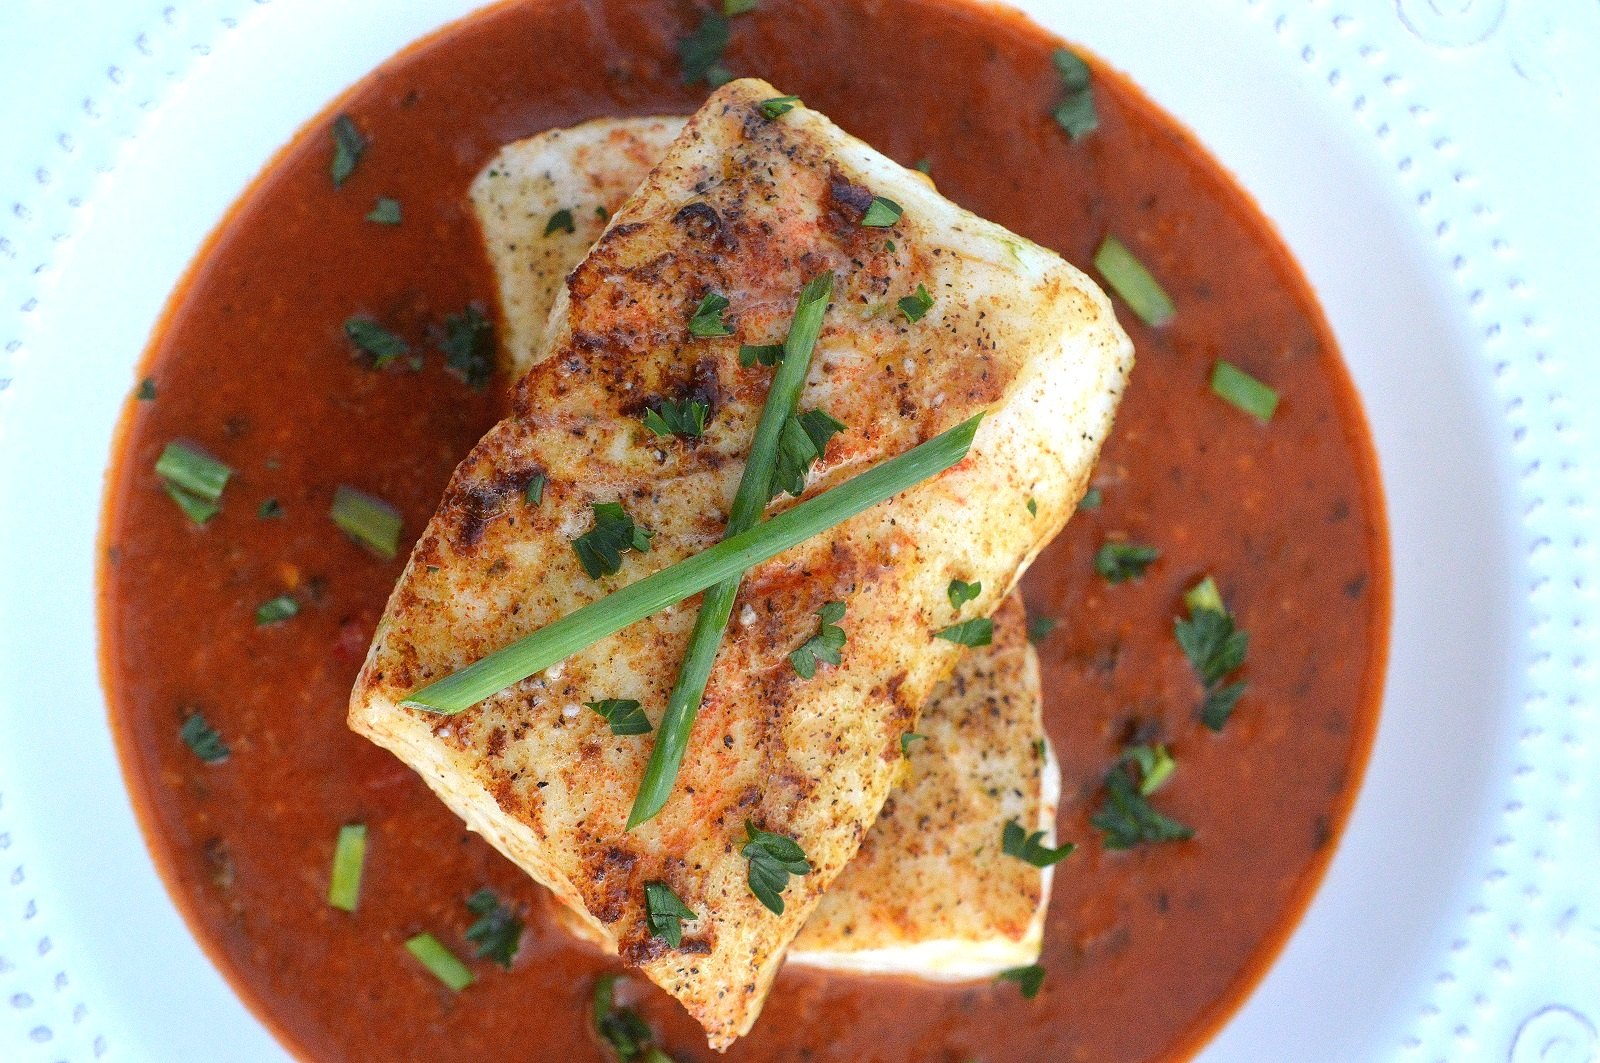 Pan Seared Halibut Over Thai Curry Sauce ready in 30 minutes or less and one of the best bites I have had!